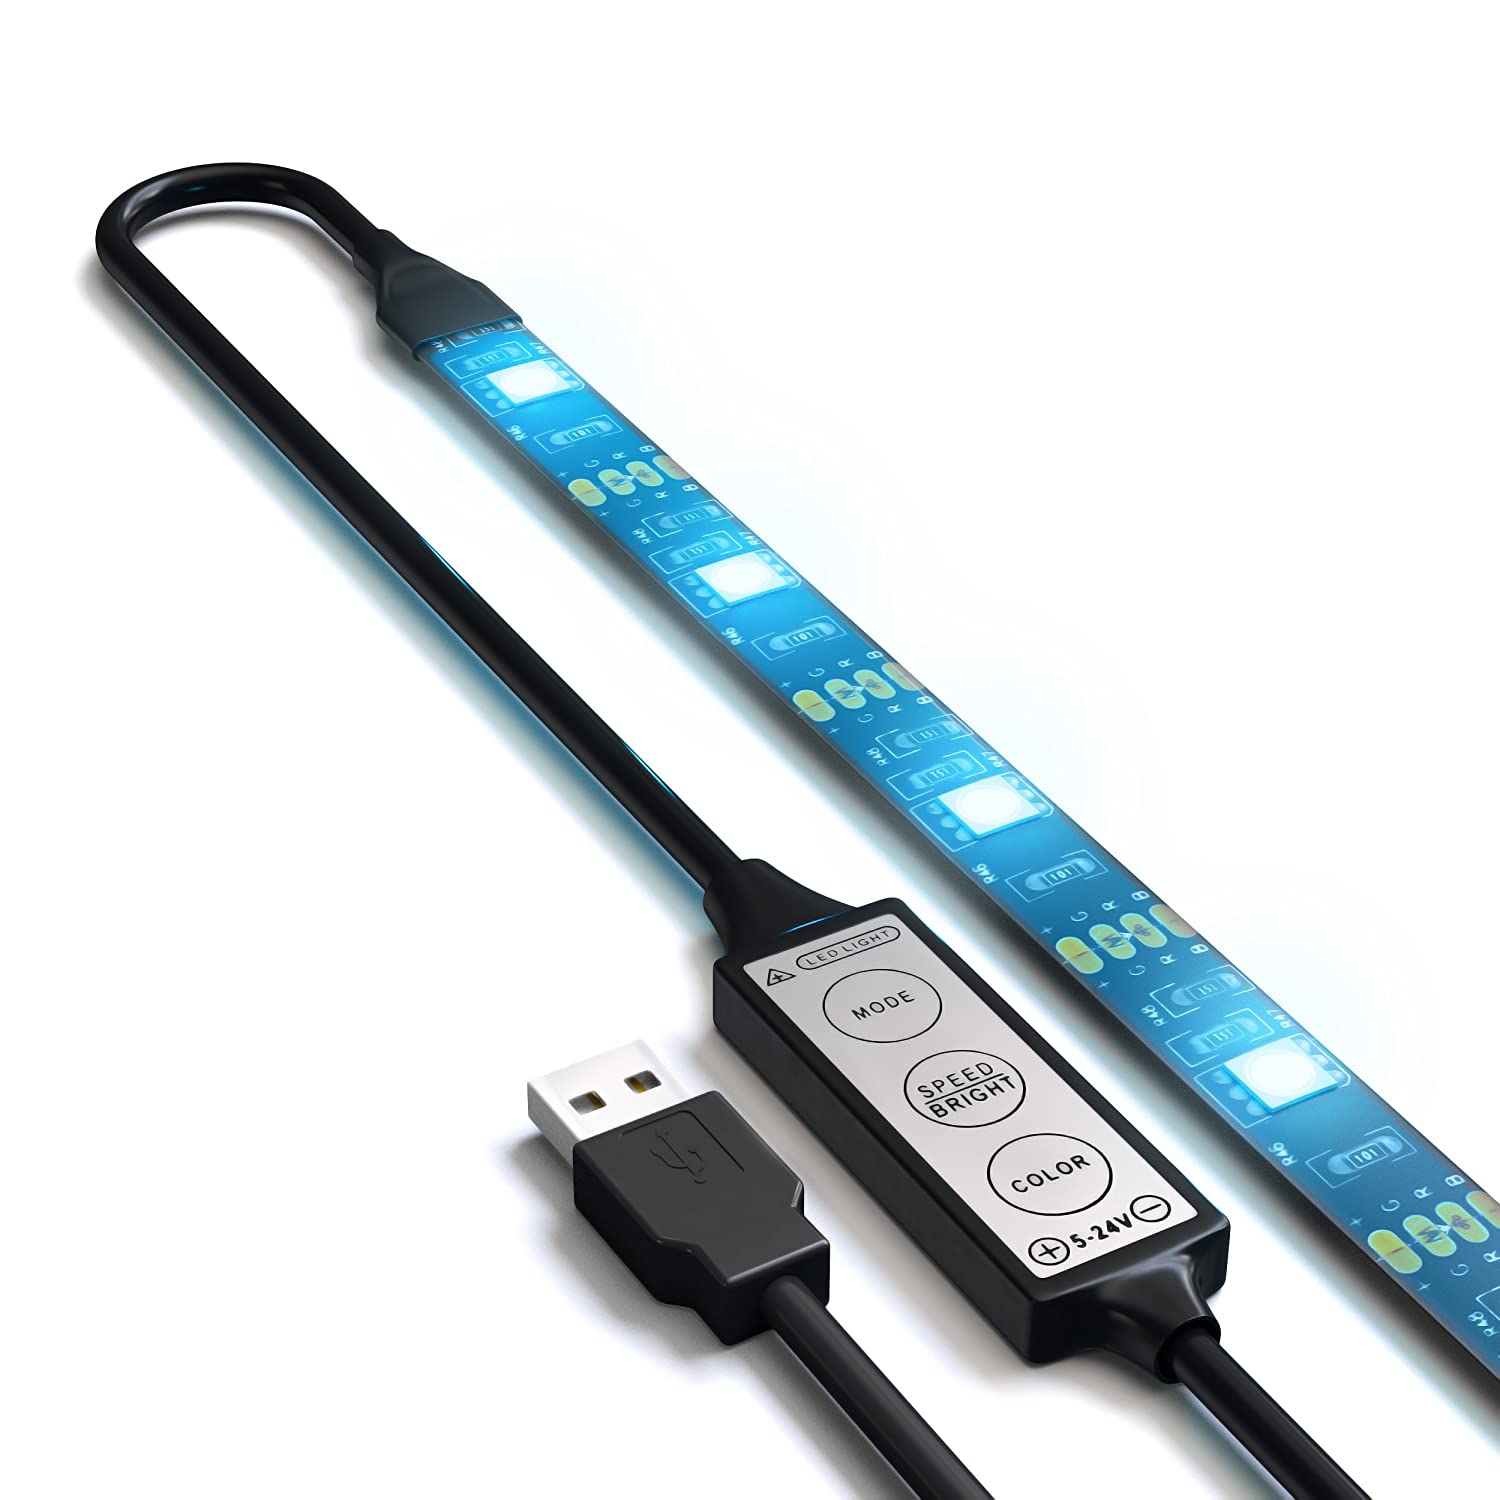 Amazon satechi flexible usb accent led rgb light strip amazon satechi flexible usb accent led rgb light strip adhesive tape color changing kit blackpc computers accessories aloadofball Gallery